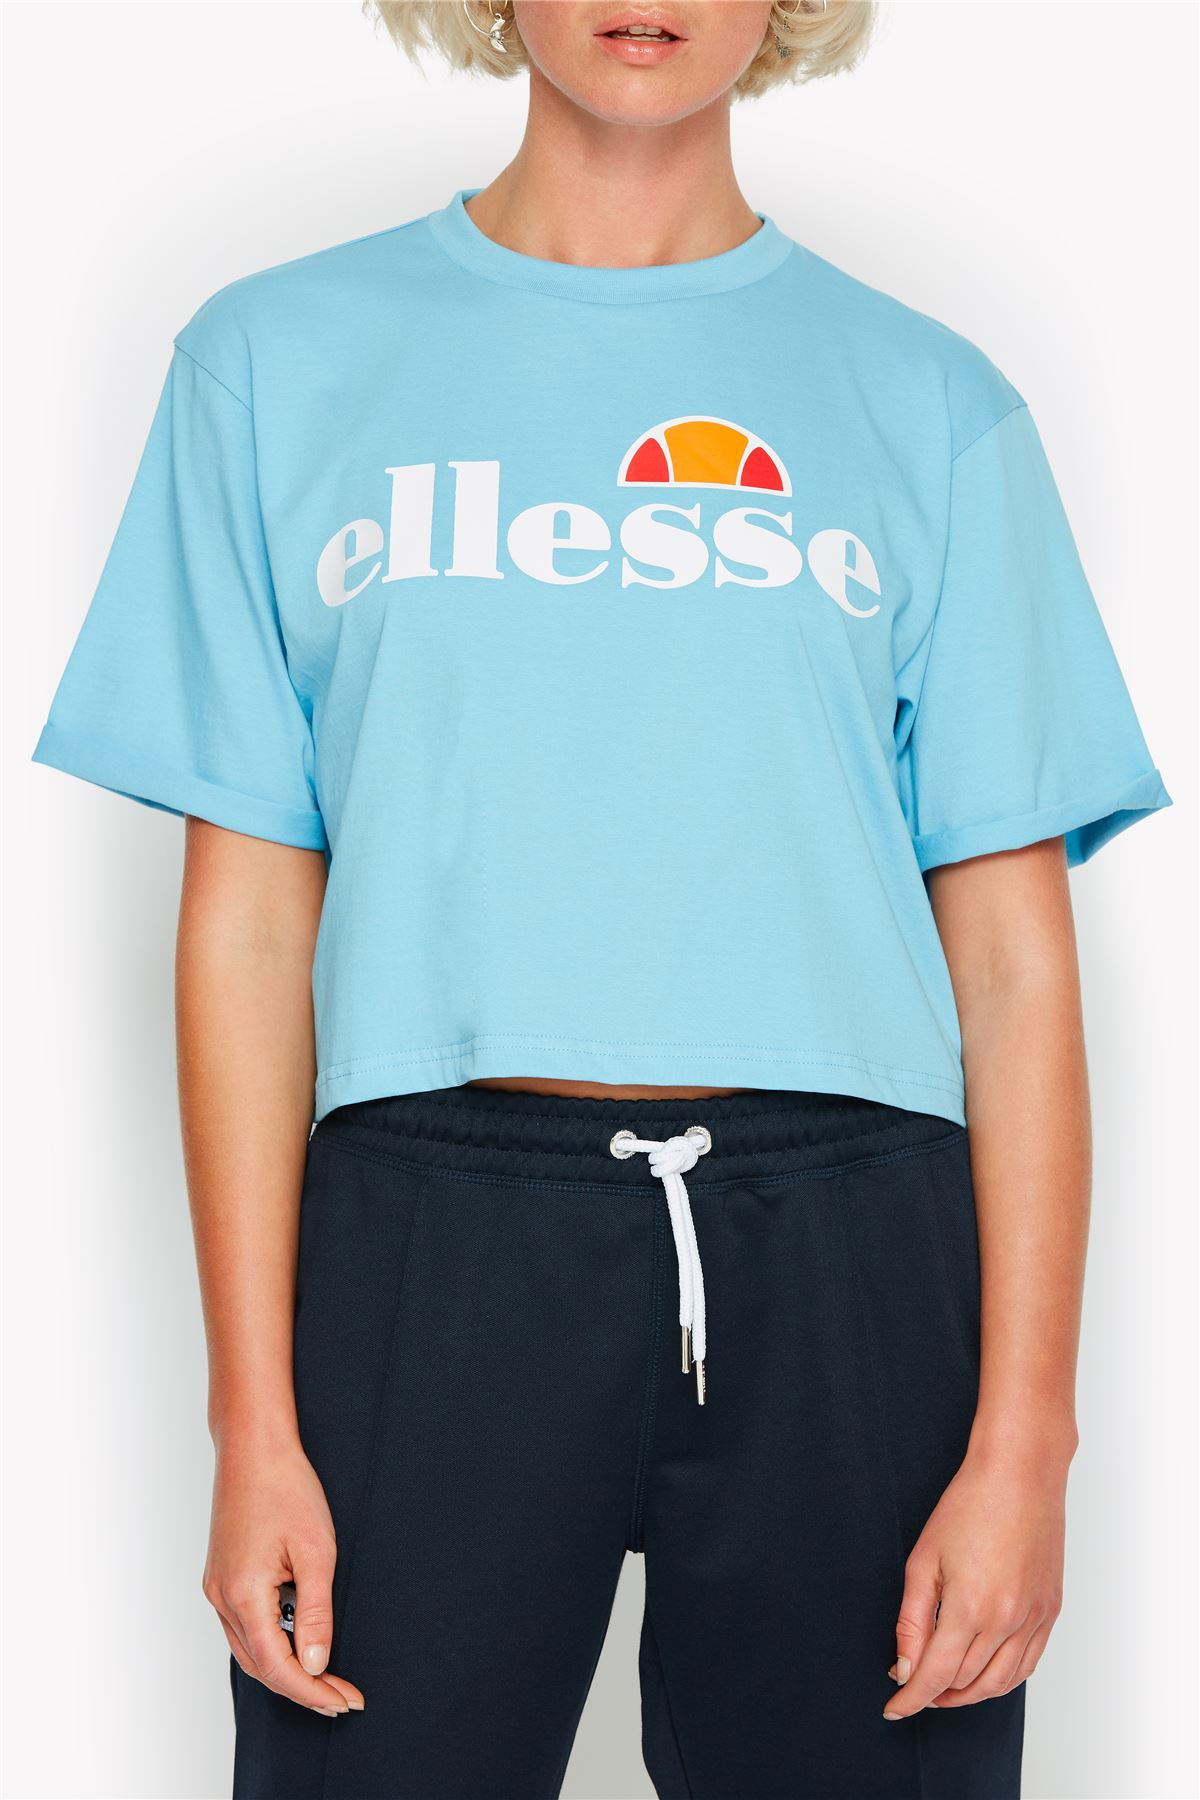 Ellesse-End-of-Line-Clearance-Sale-Bargain-Womens-Tops-T-Shirts-Free-UK-Ship thumbnail 4